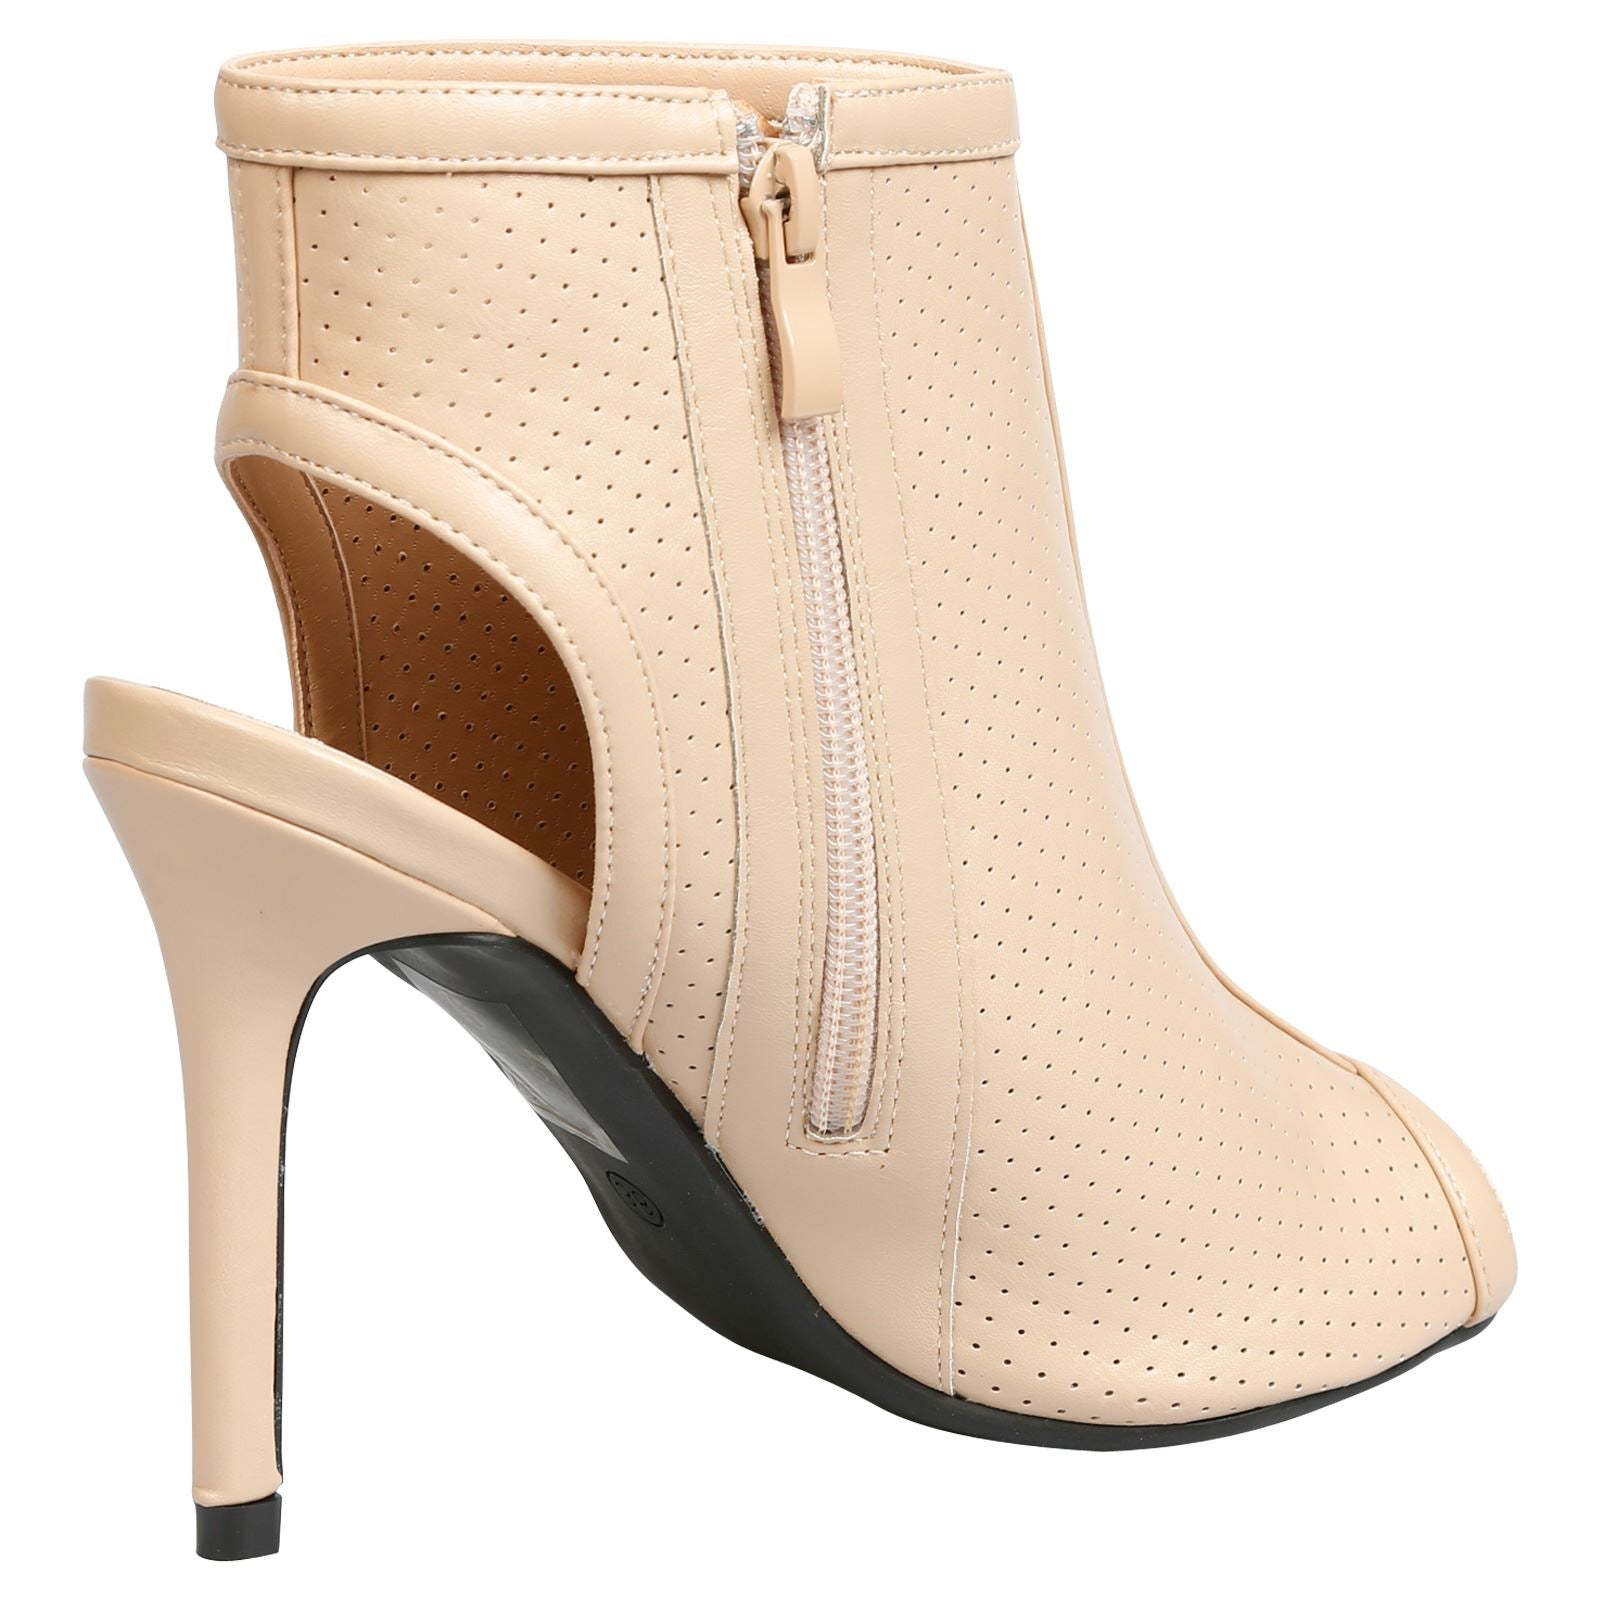 Eura Peep Toe Stiletto Ankle Boots in Nude Faux Leather